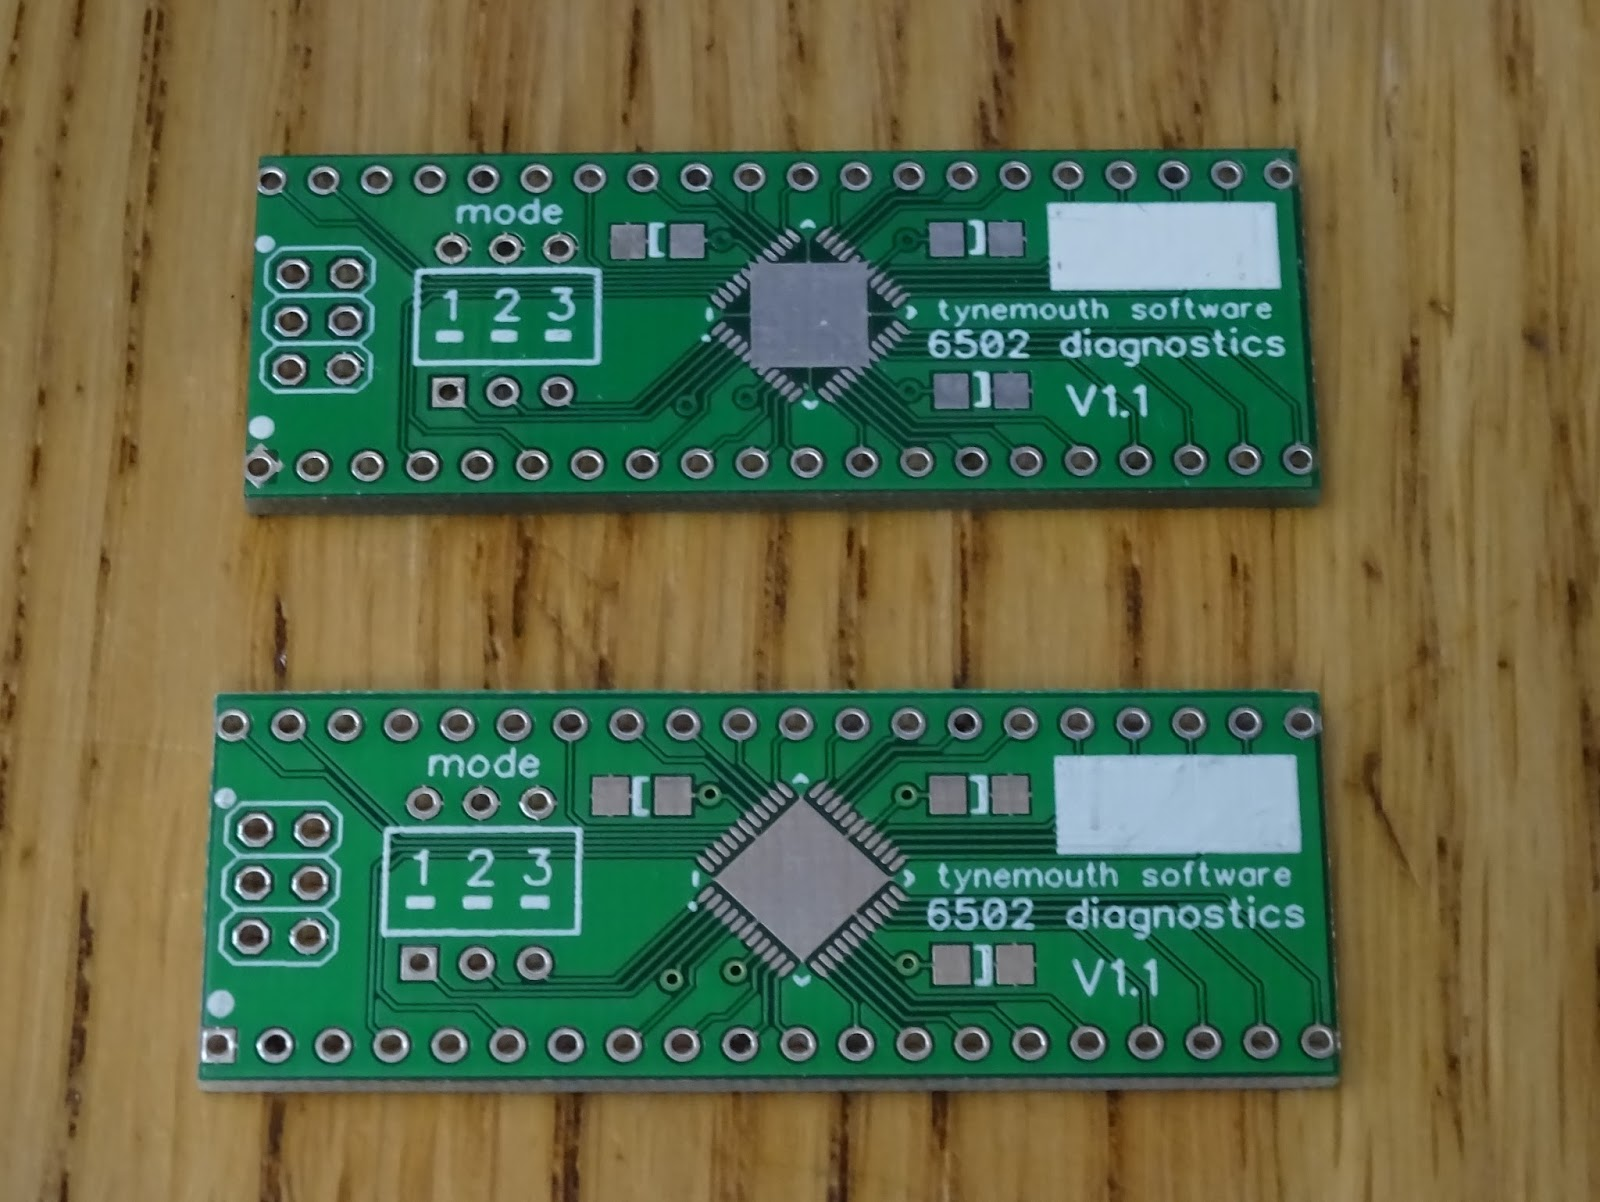 Tynemouth Software 6502 Diagnostics Update Logic Diagram The First Version Of This Board Arrived With An Error From Pcb Manufacturers For Some Reason They Had Modified My Design And Rotated Ground Pad